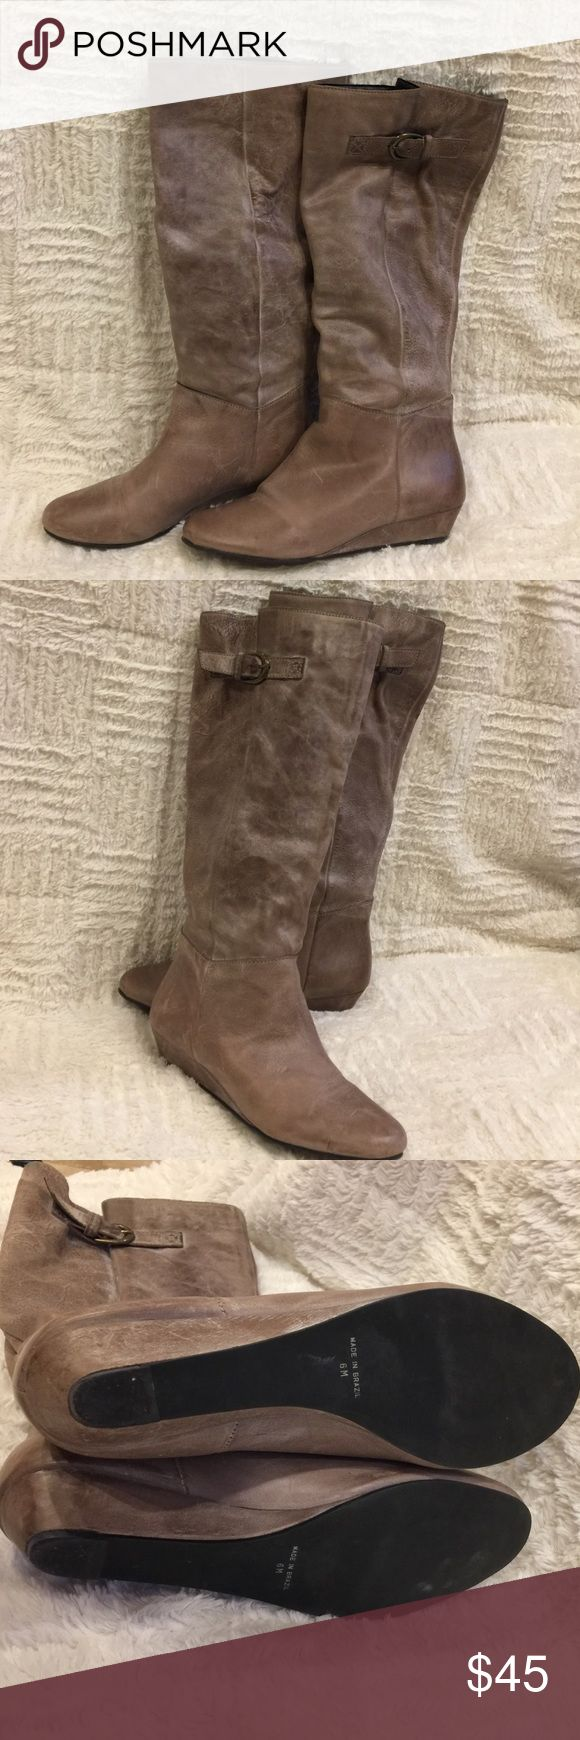 Steve Madden 'Intyce' grey leather boots Steve Madden 'Intyce' grey leather boots- 'like brand new' condition!!- feel free to make an offer! Steve Madden Shoes Winter & Rain Boots